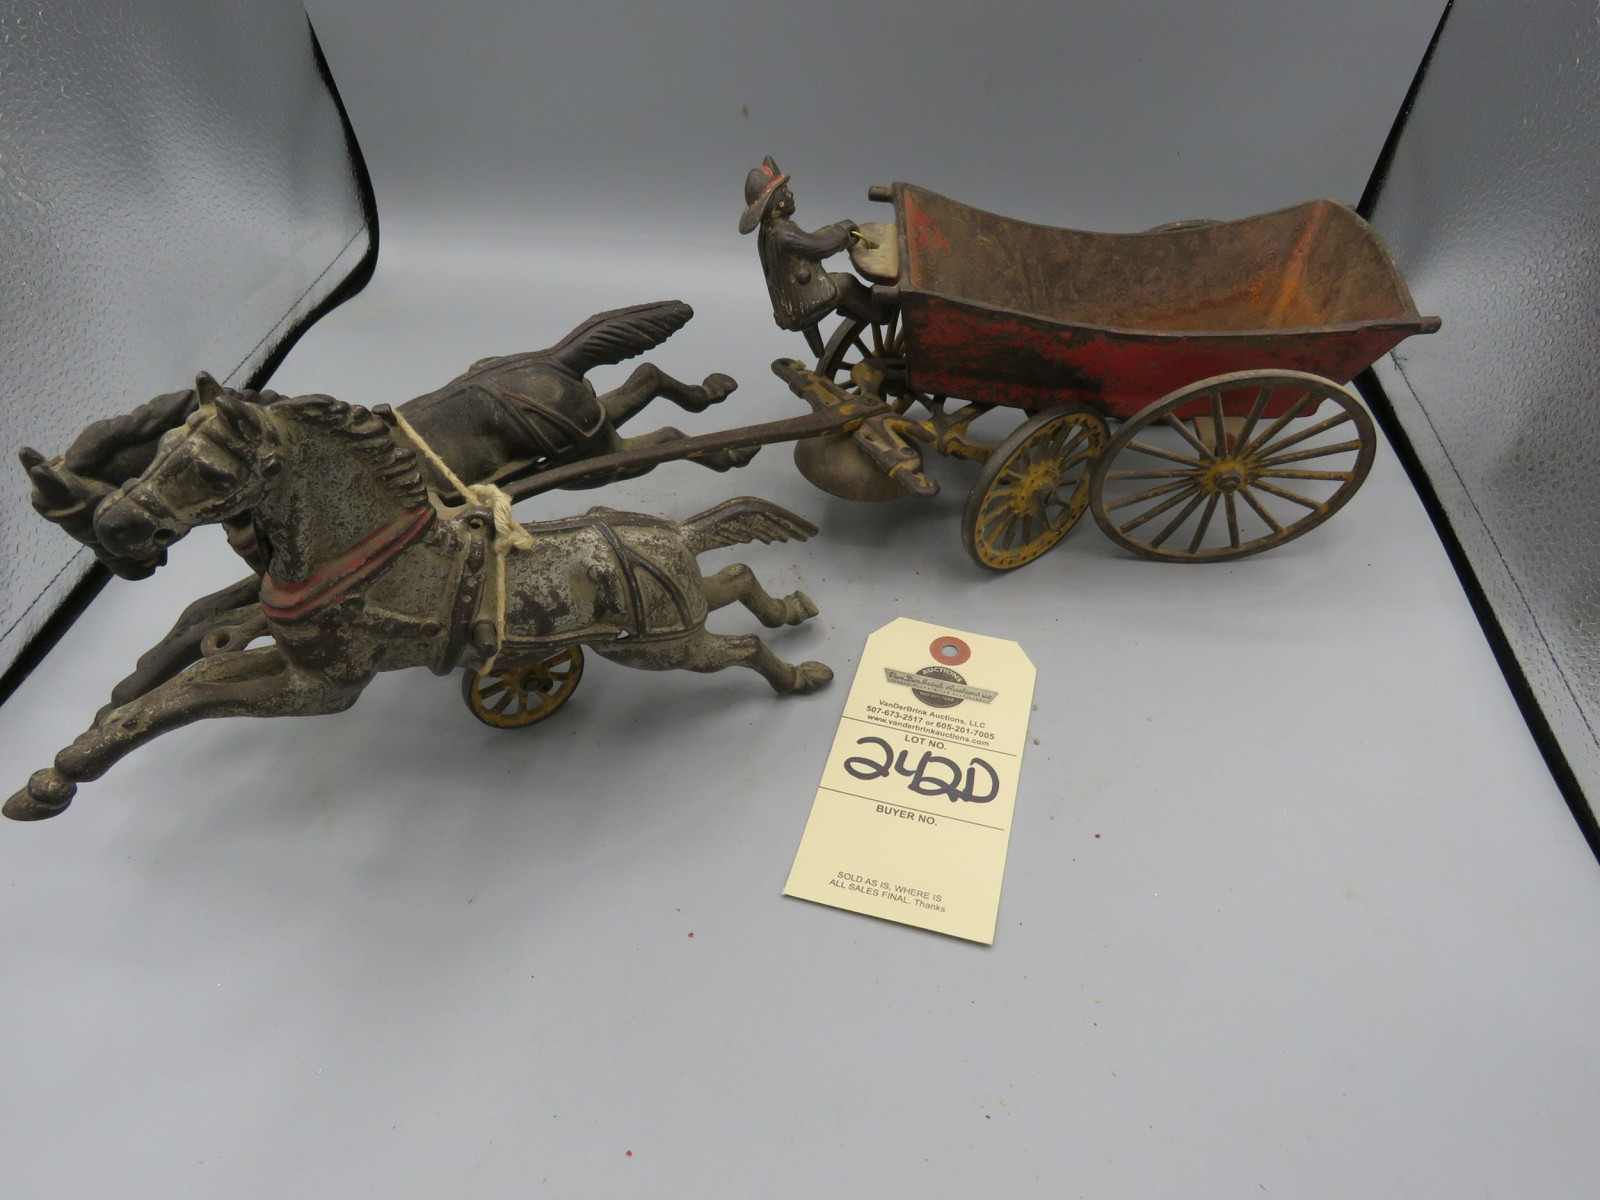 Vintage Cast Iron Fire Wagon- Horse Drawn - Image 1